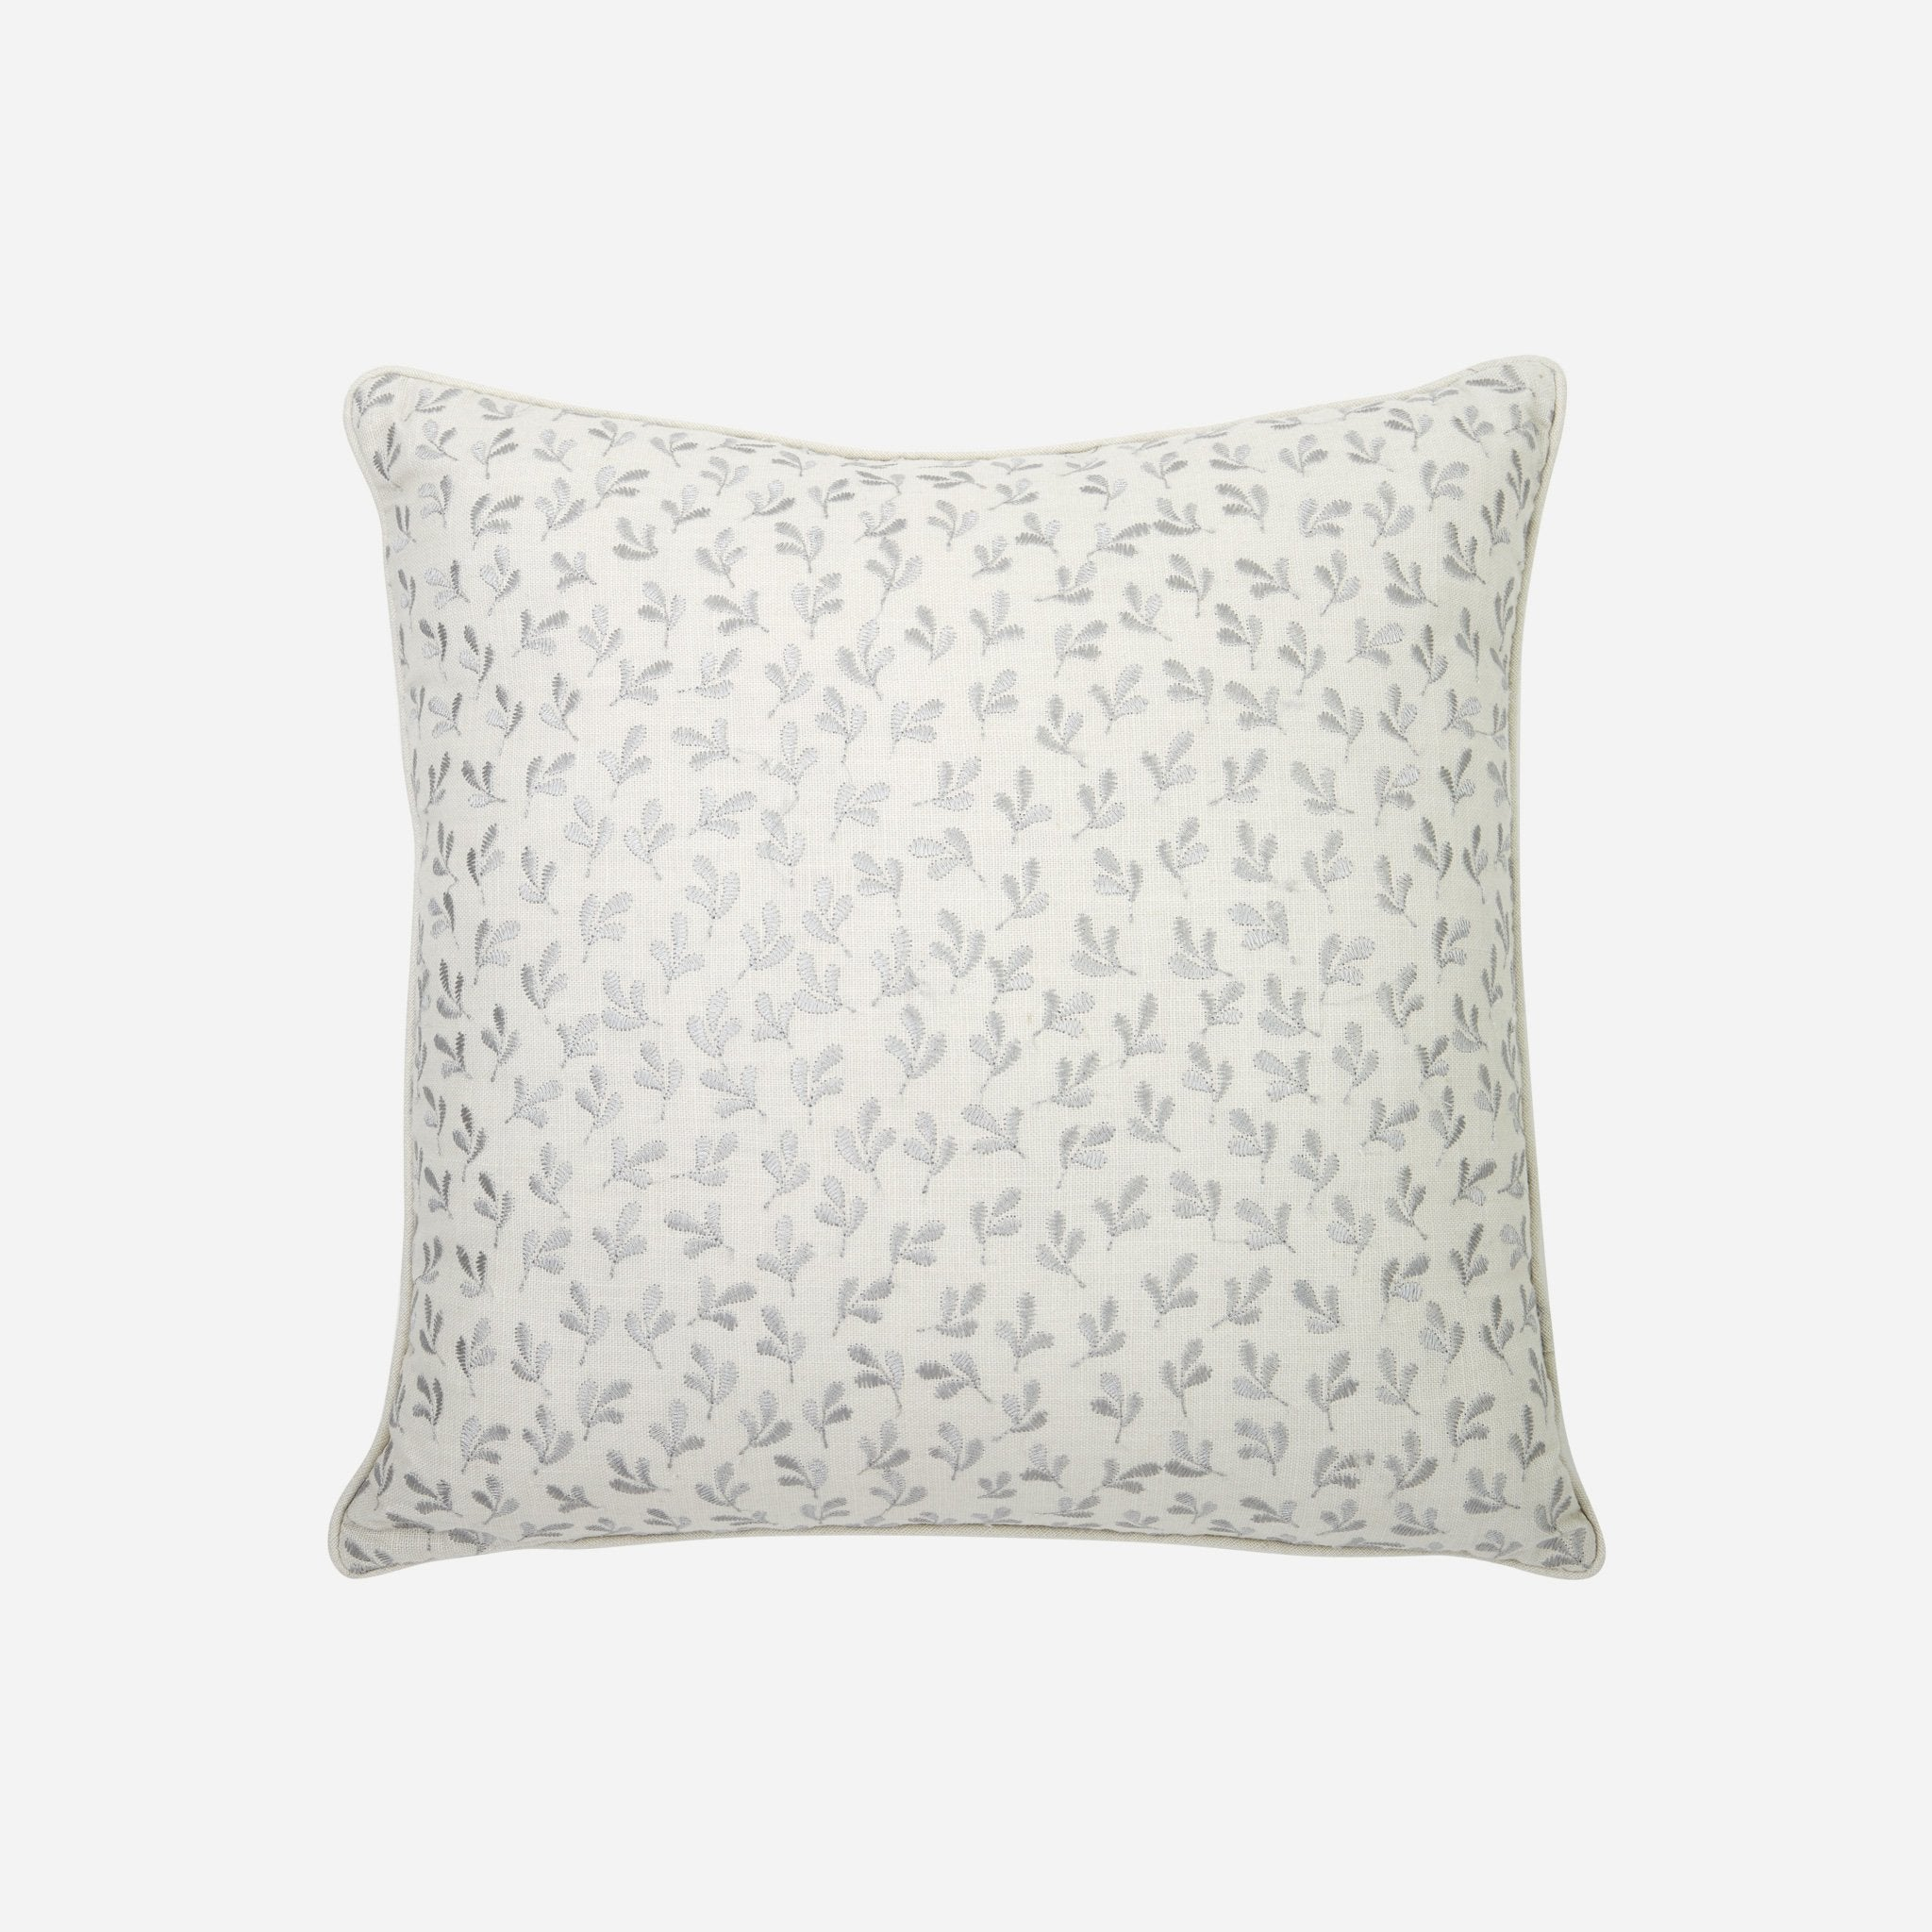 Phoebe Fashion Pillow